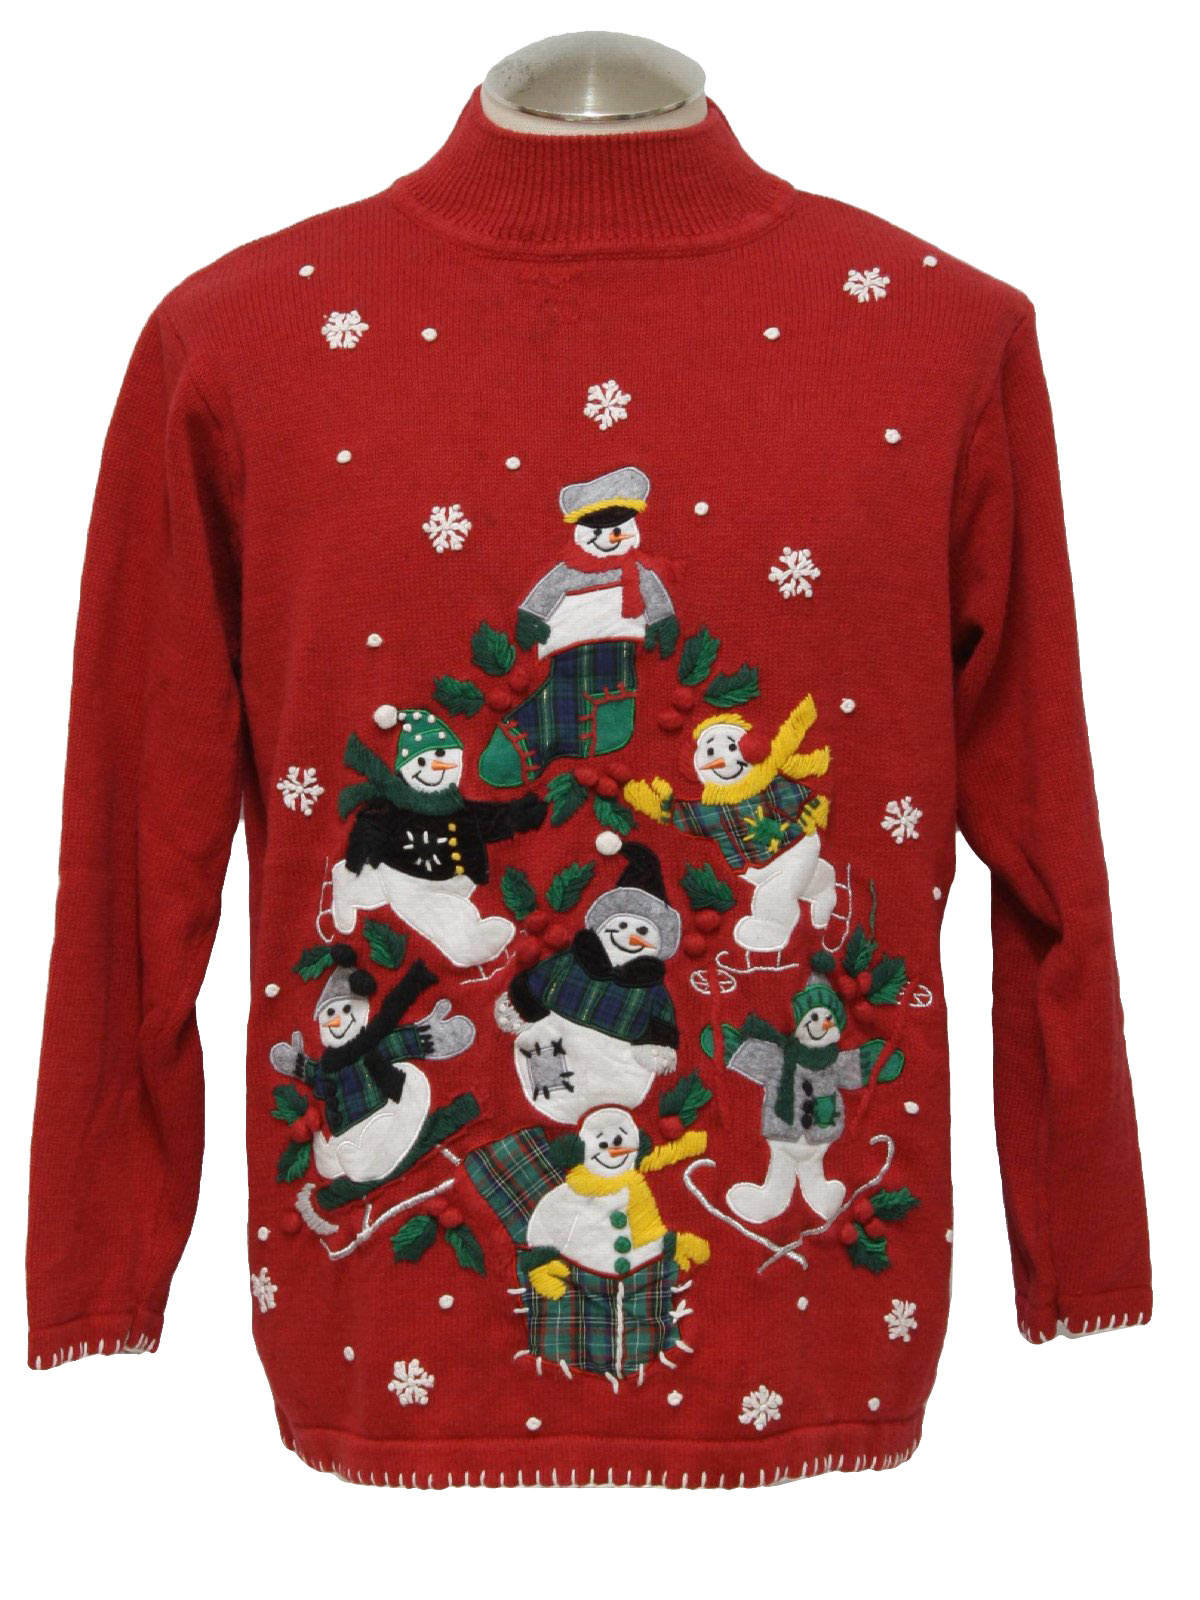 Ugly Christmas Sweater: -B P Design- Unisex red background cotton